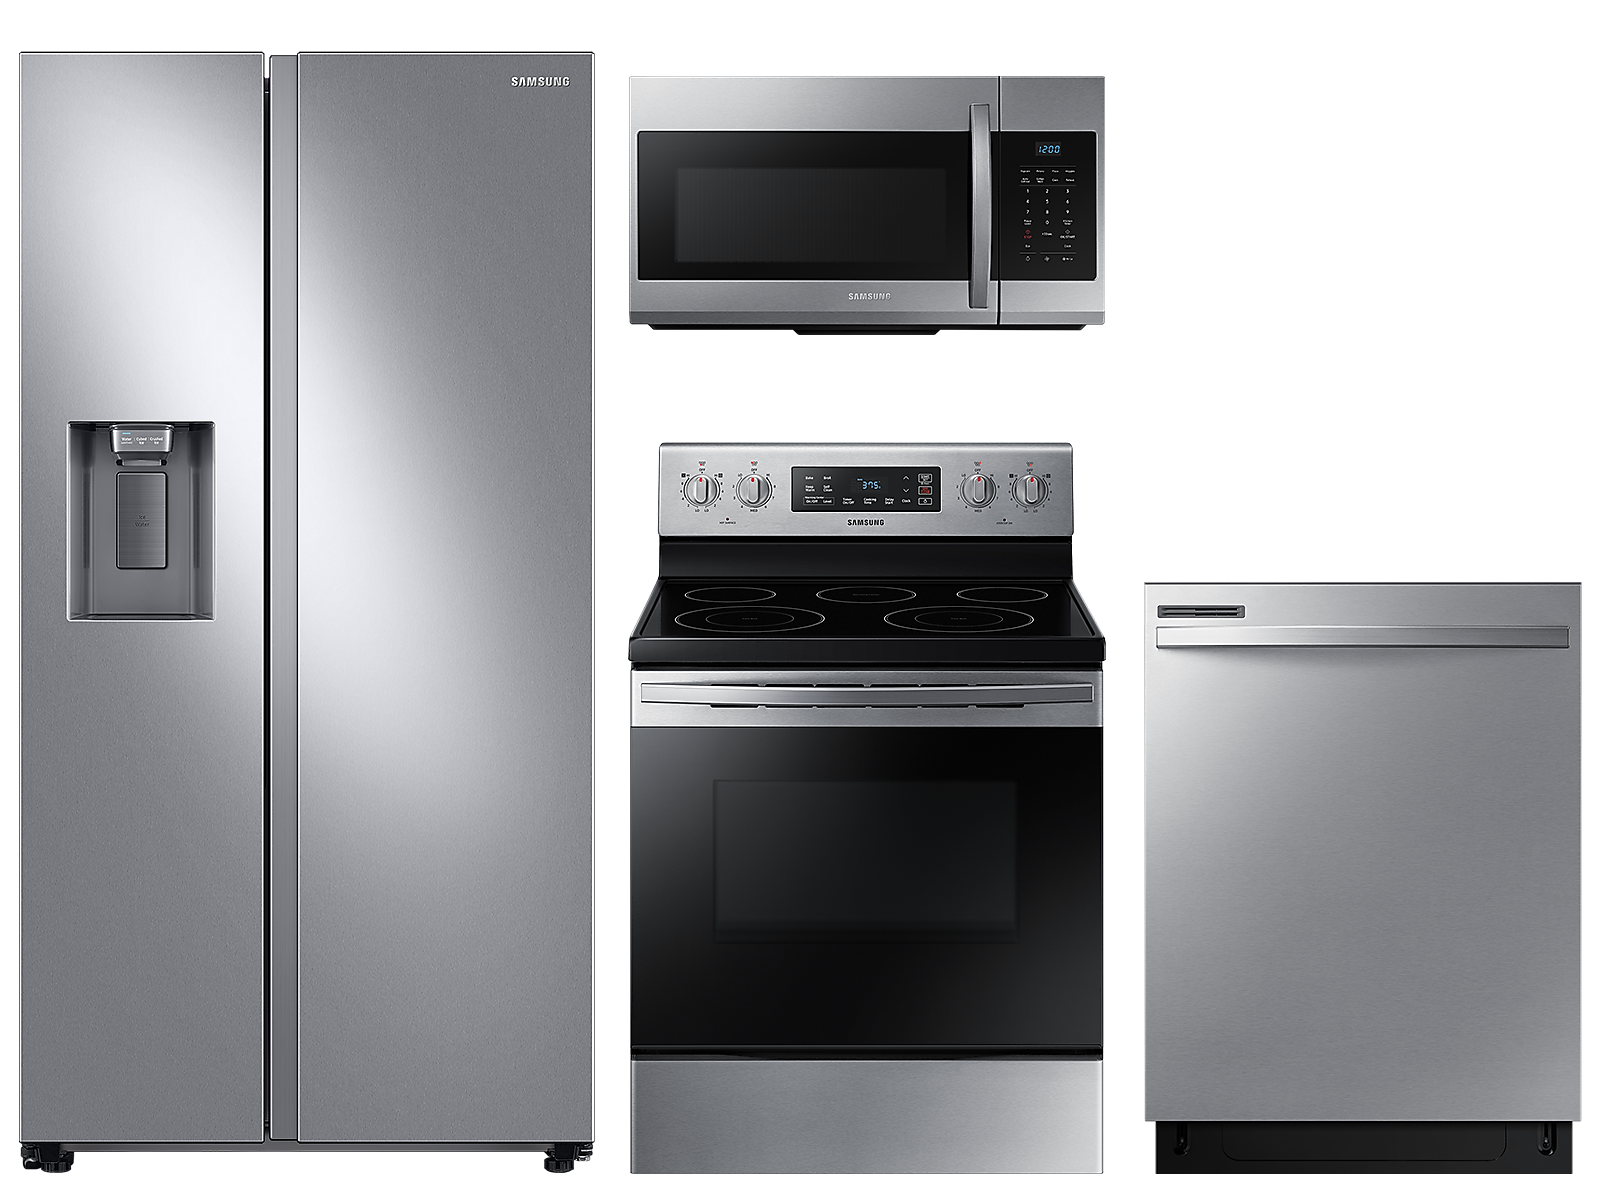 Samsung coupon: Samsung Large capacity Side-by-Side refrigerator & electric range package in Stainless Steel(BNDL-1590166657161)